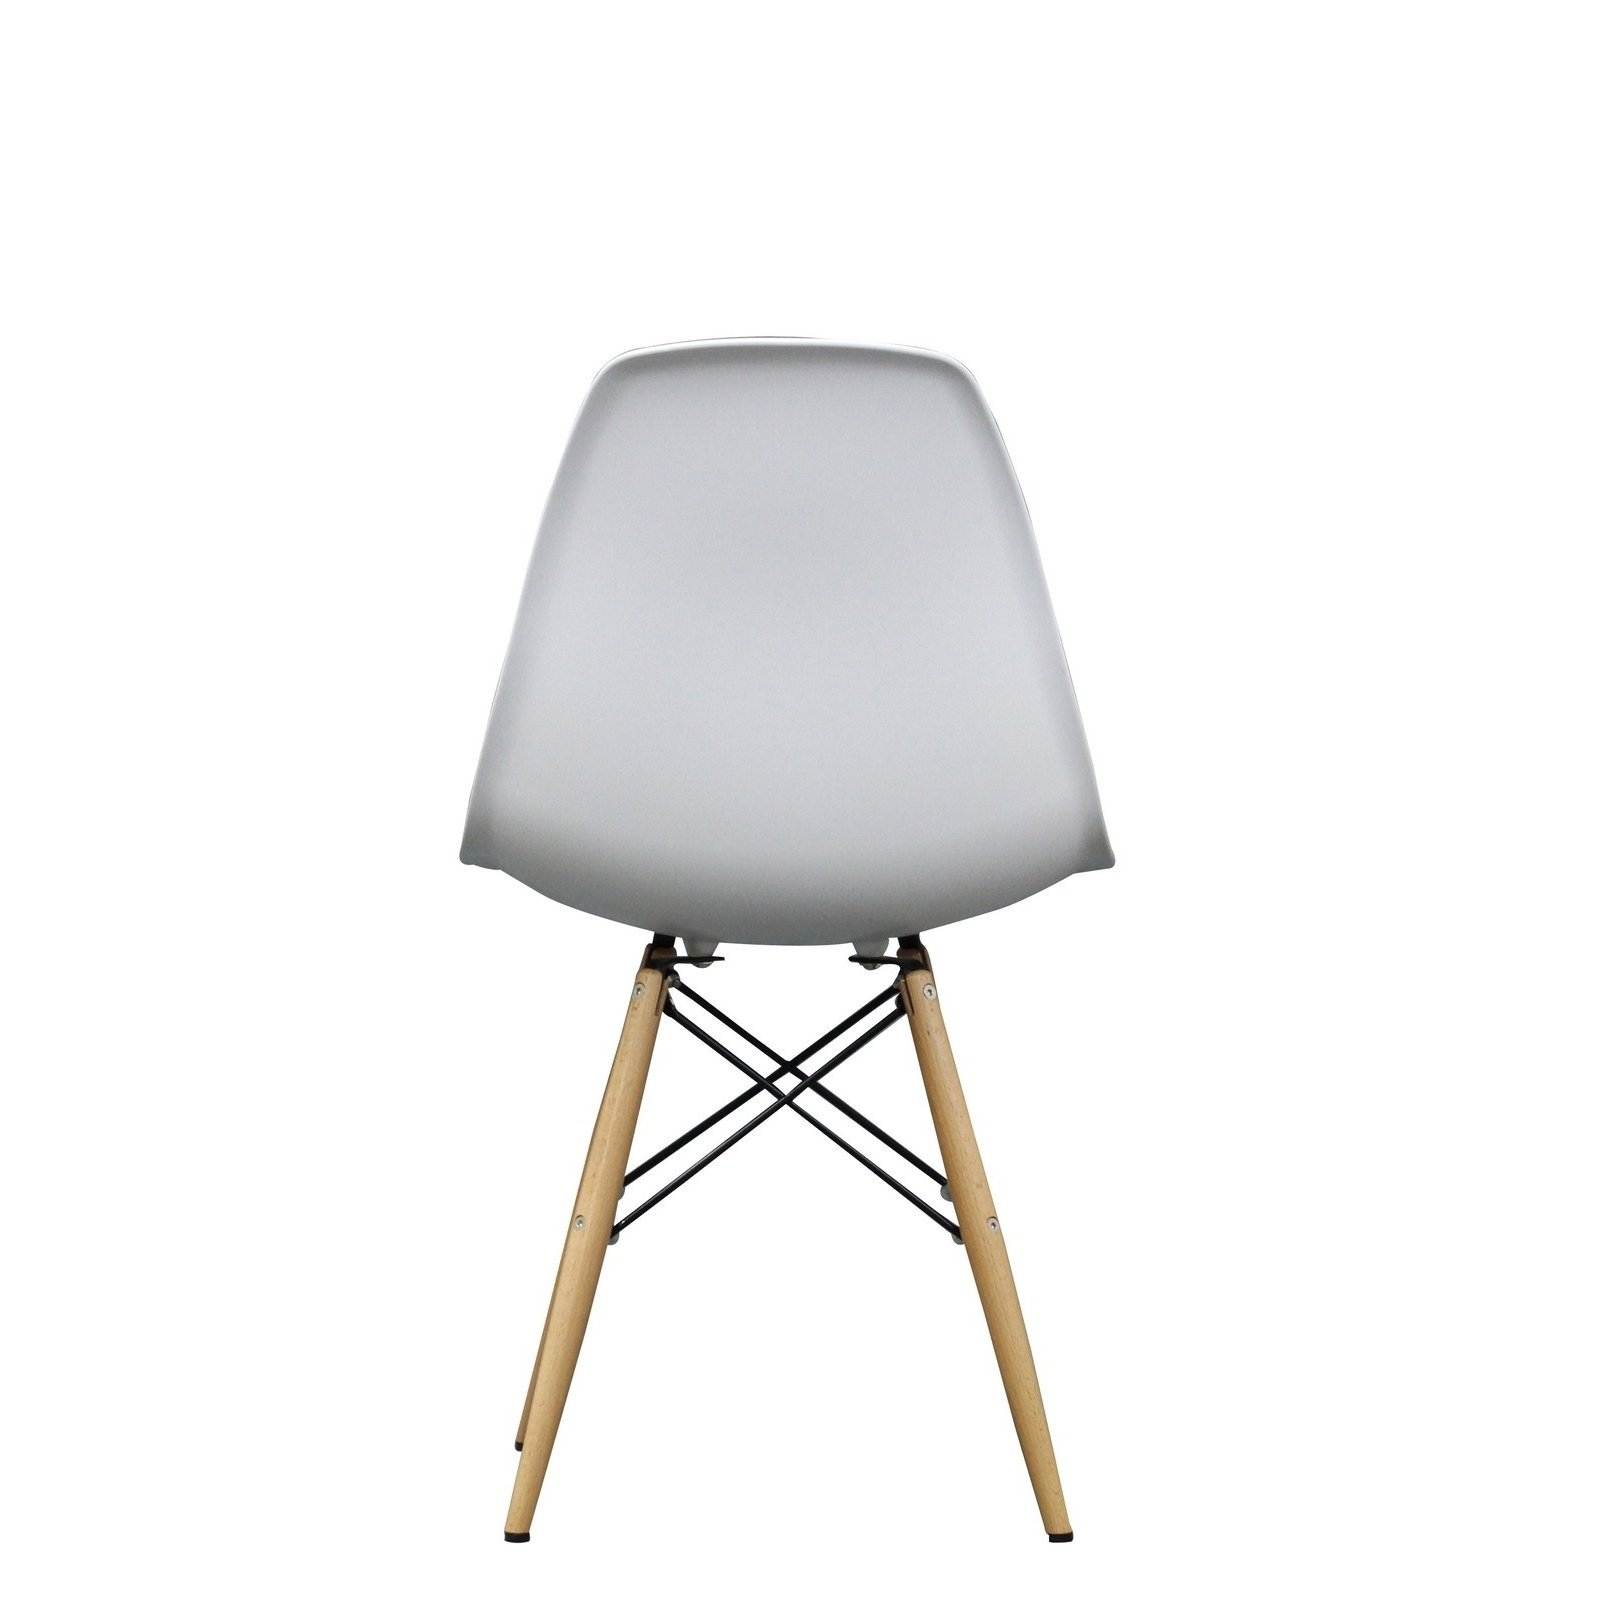 Modway Pyramid Side Chair with Natural Wood Legs in White by Modway (Image #4)